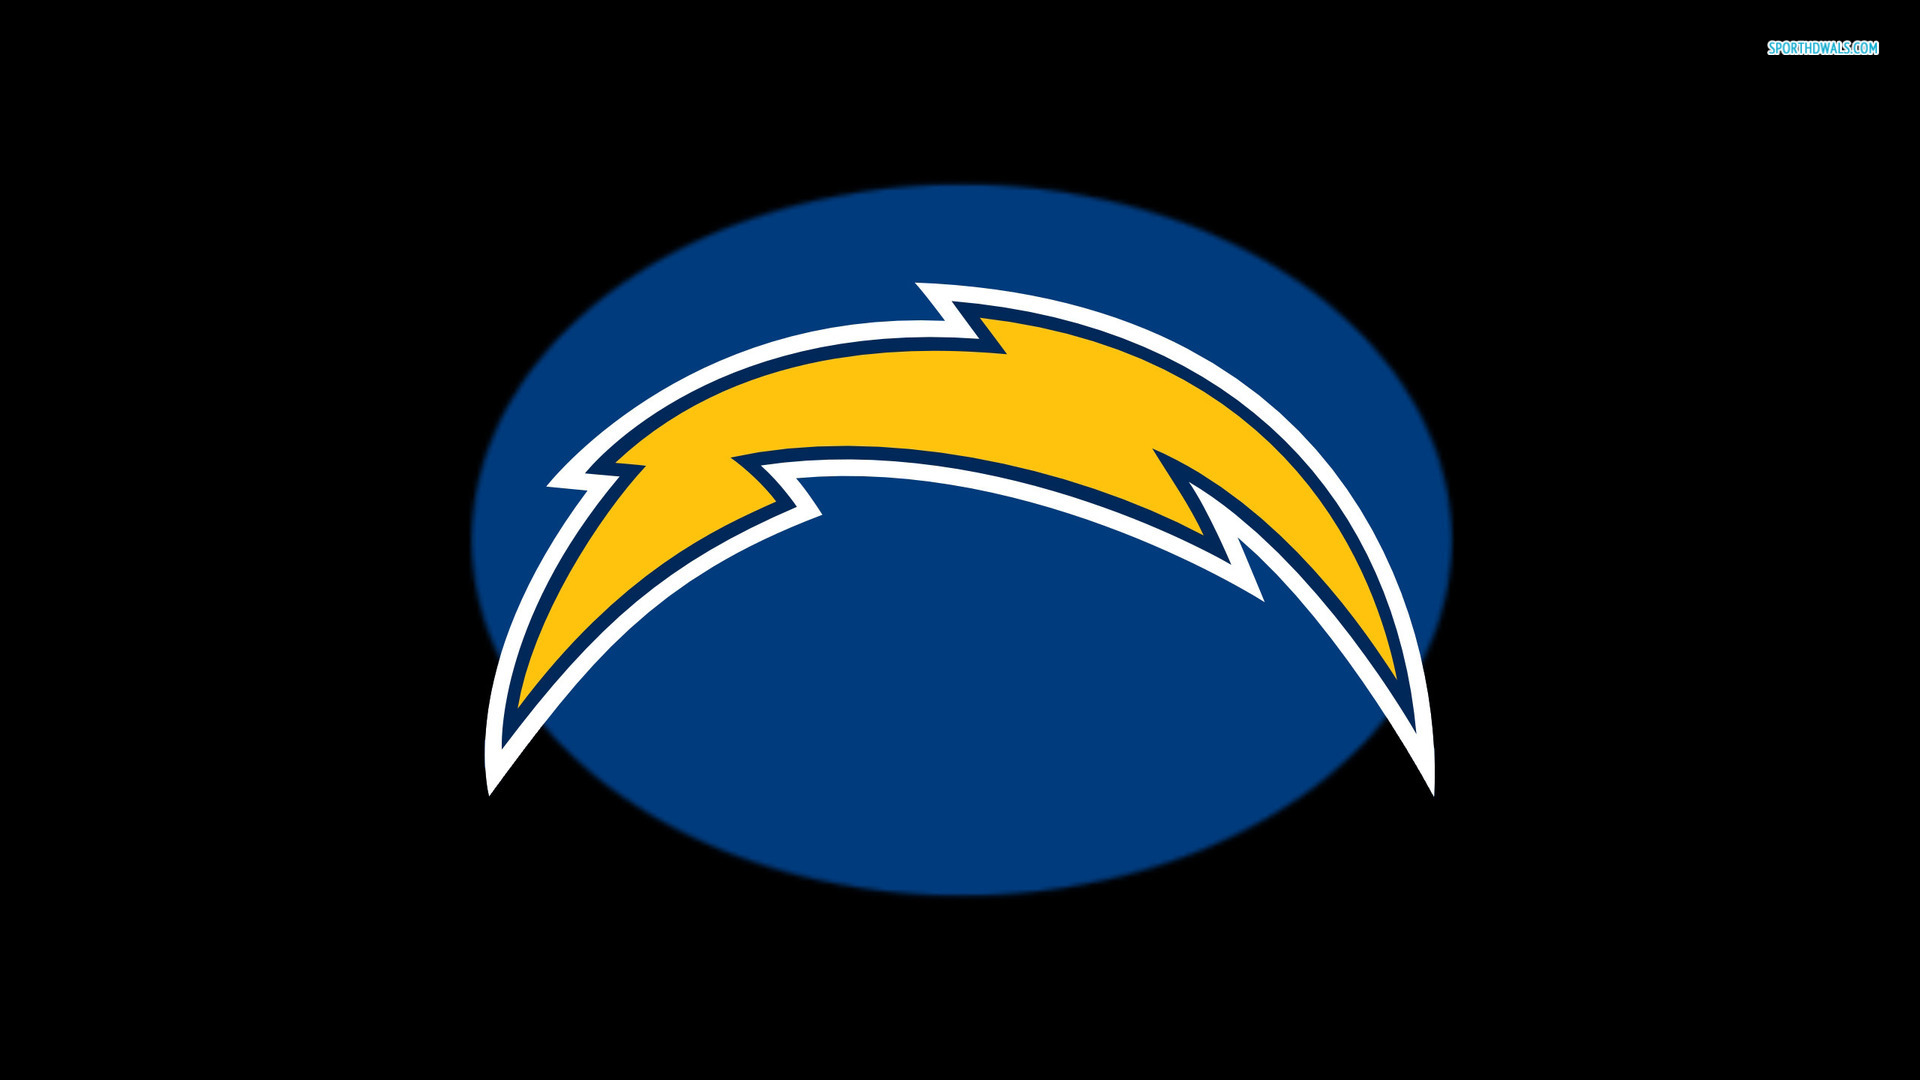 Free Download San Diego Chargers Wallpapers Hd Wallpapers Early